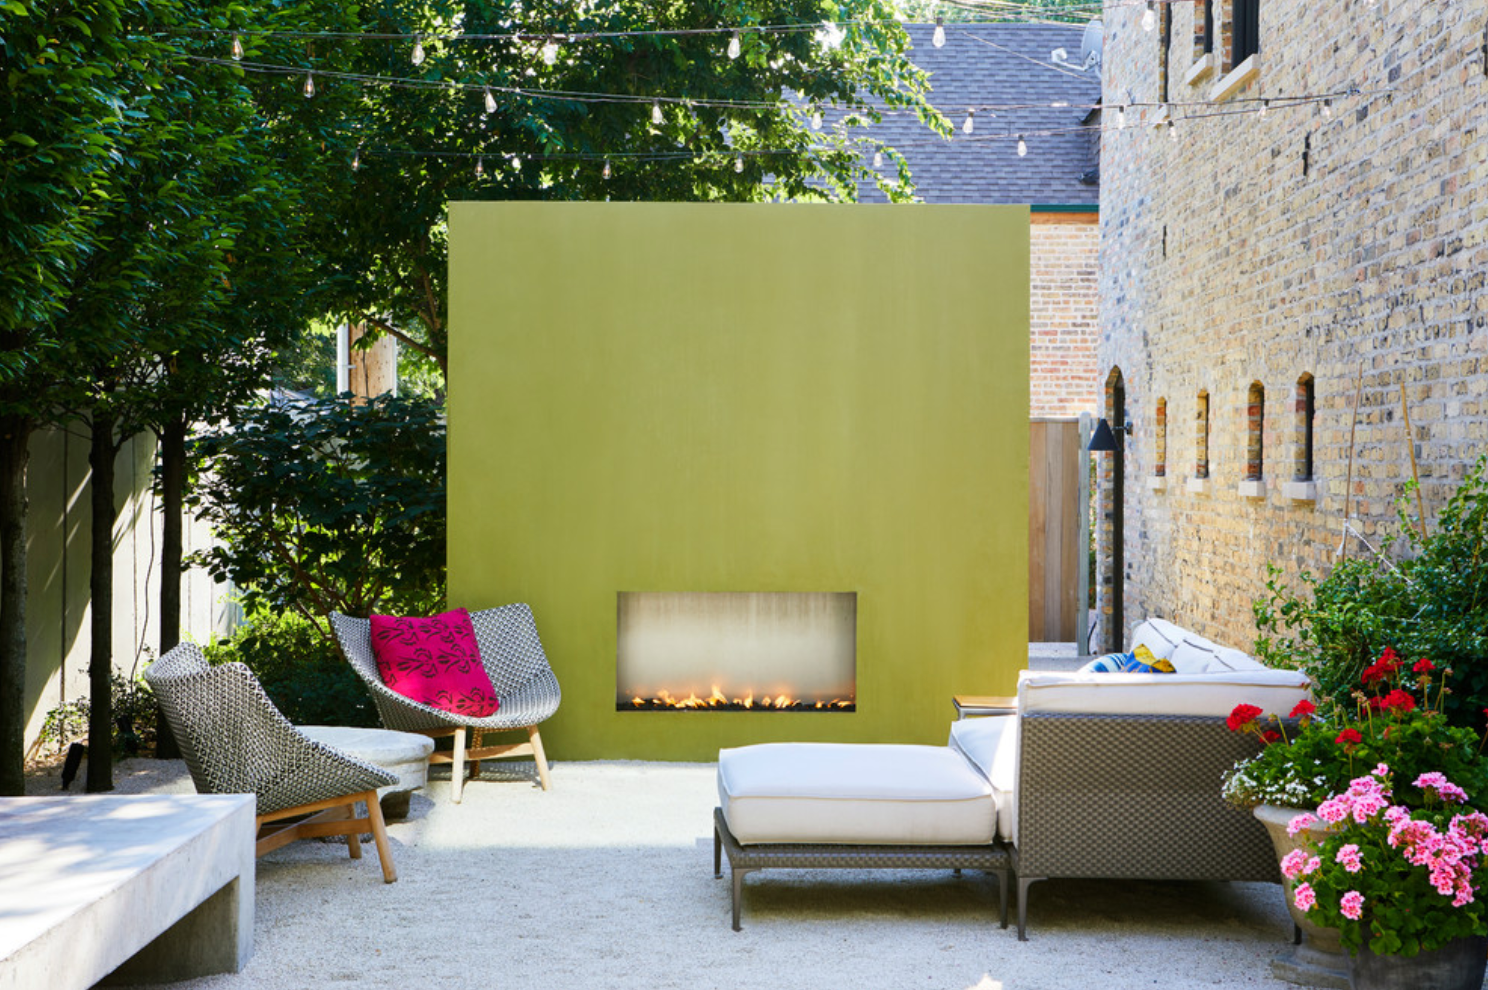 An outdoor space with several cozy seats and a large yellow fireplace